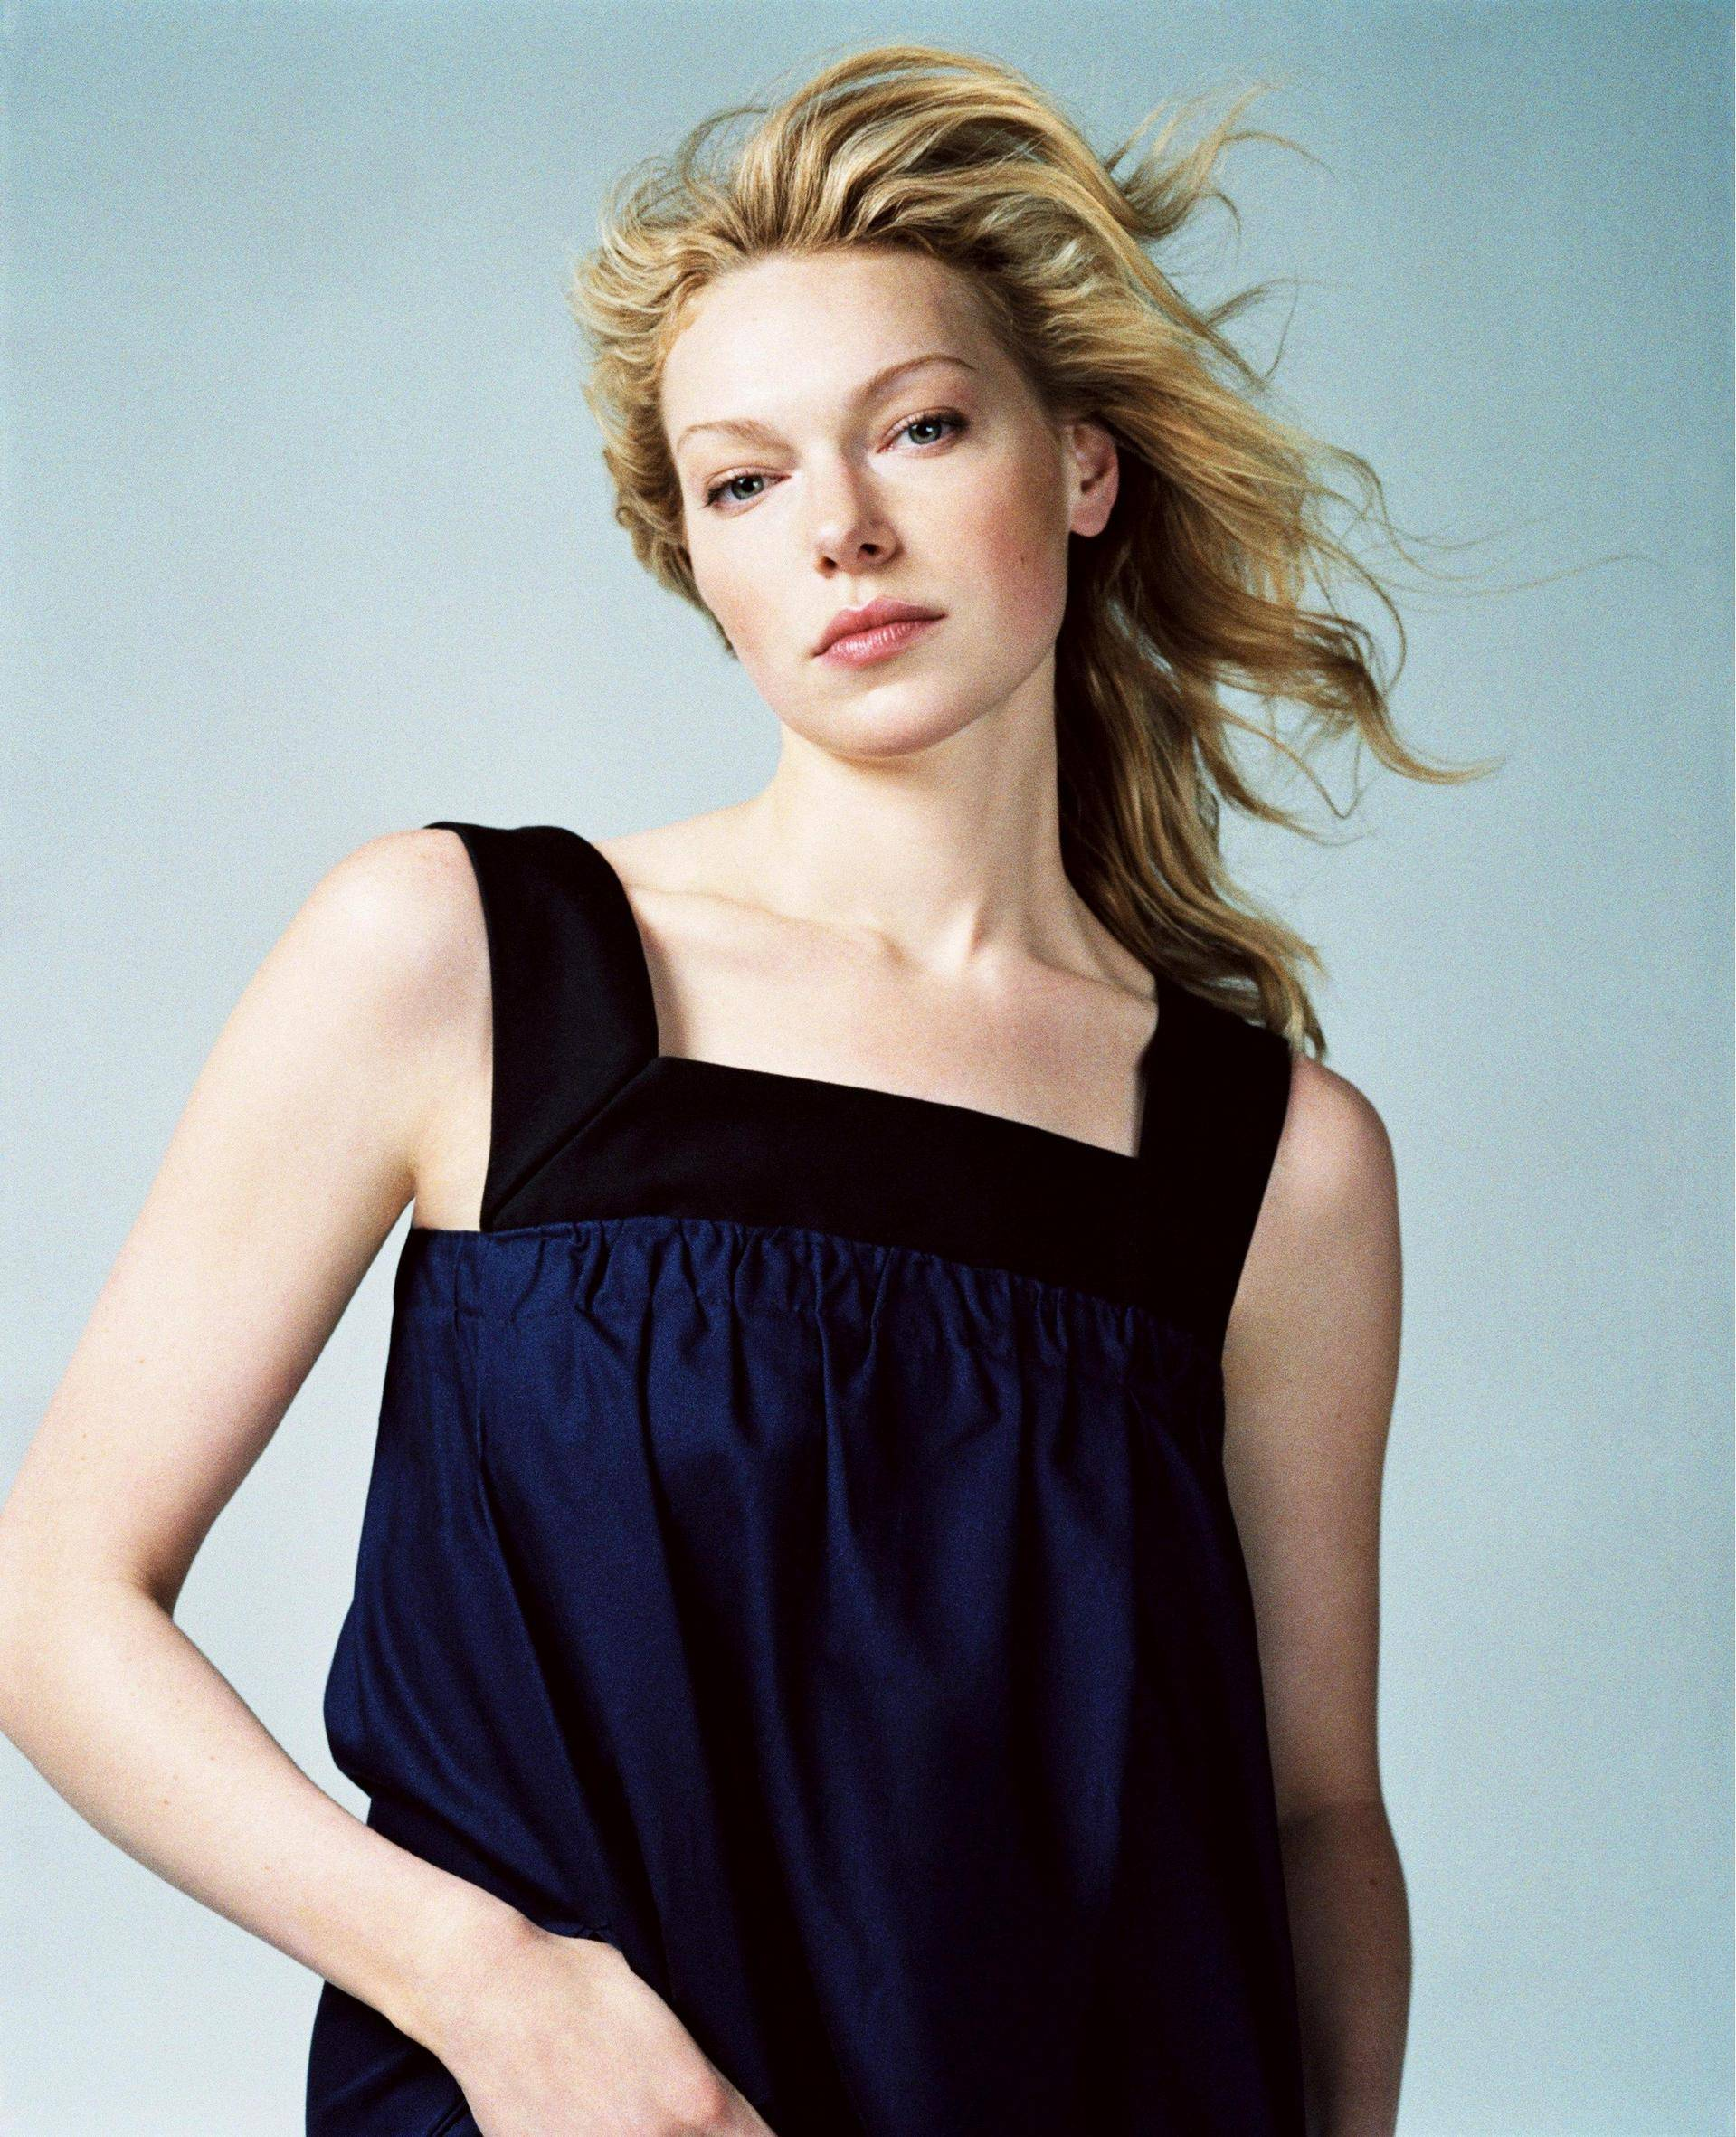 42 Hot Pictures of Laura Prepon from Orange Is The New